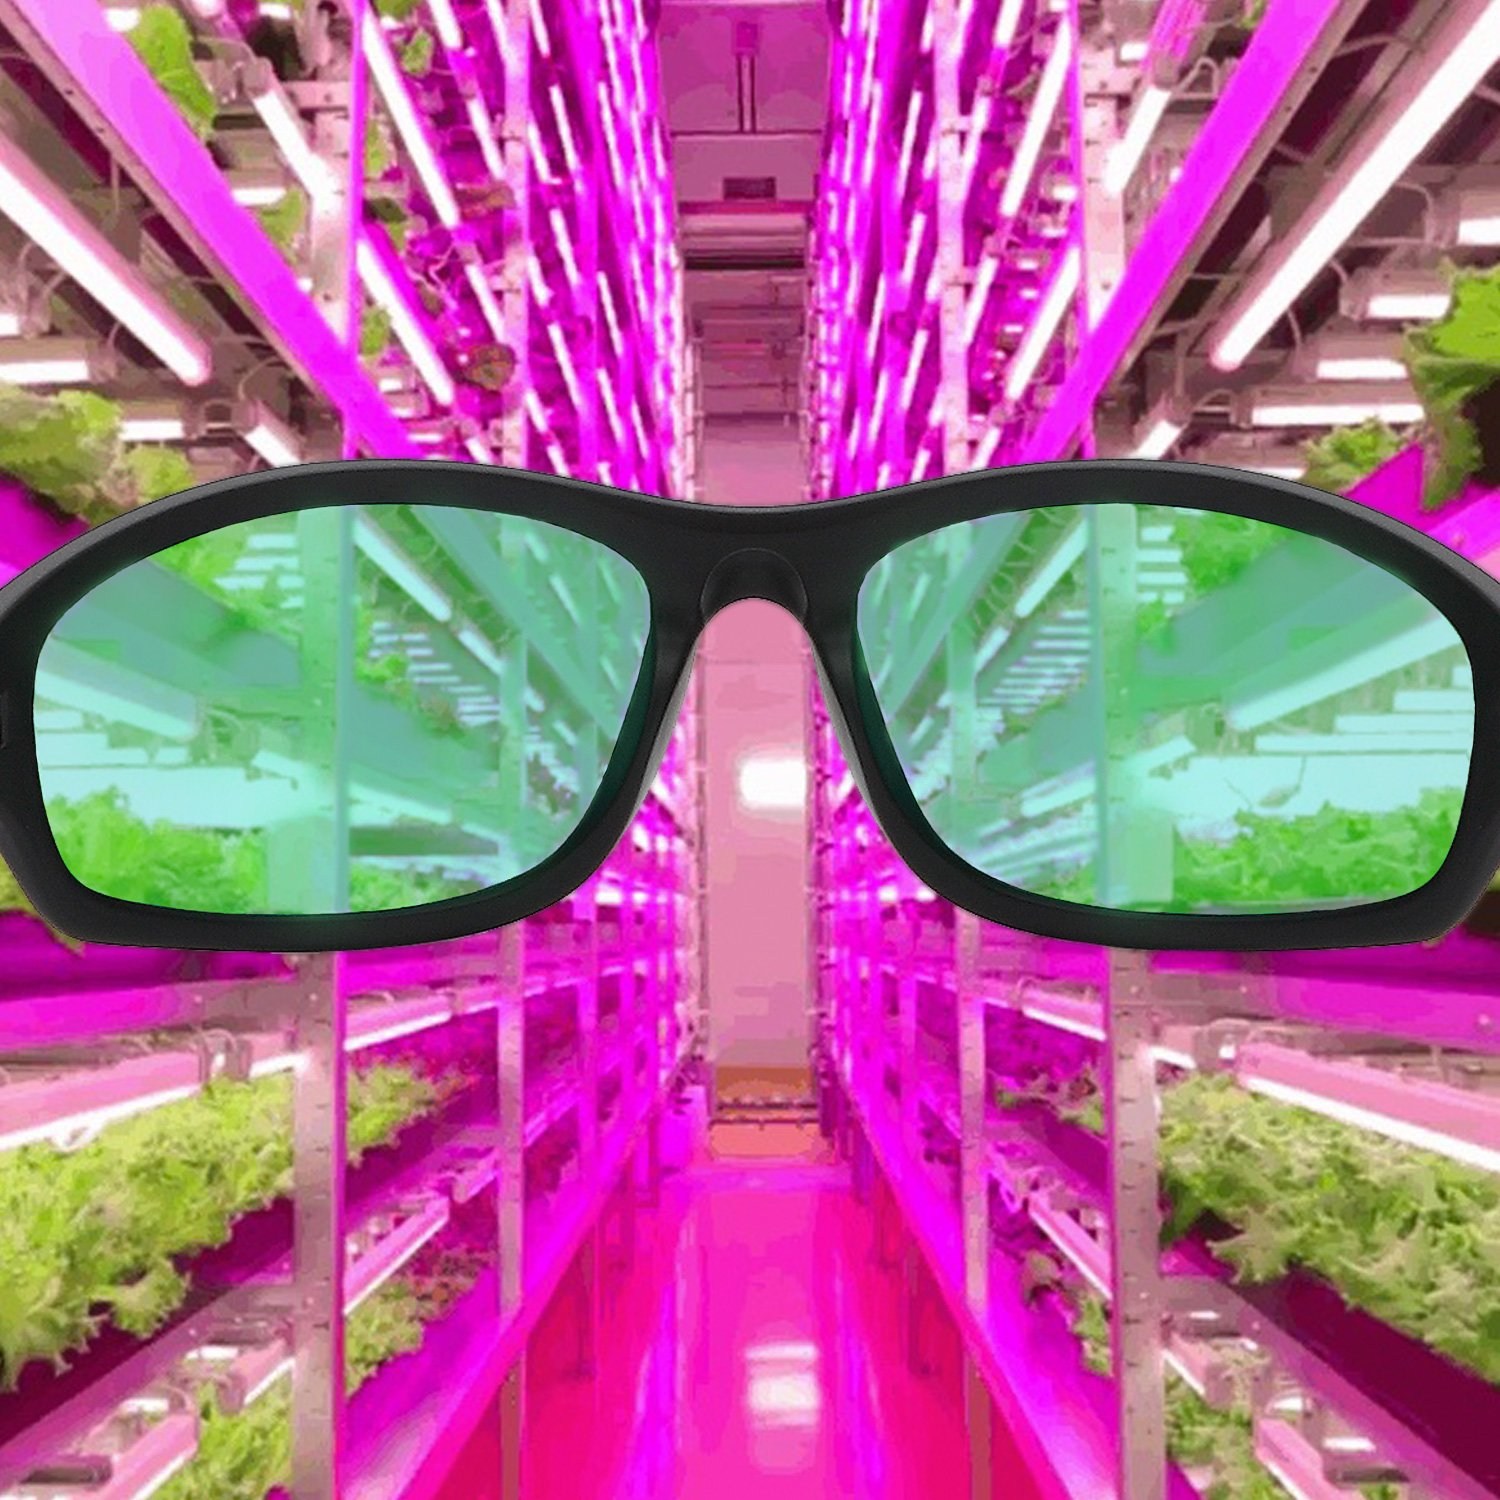 LEDGrower1 Apollo Horticulture UV400 LED Indoor Growing Hydroponics Grow Light Room Glasses for Intense LED lighting Visual Eye Protection